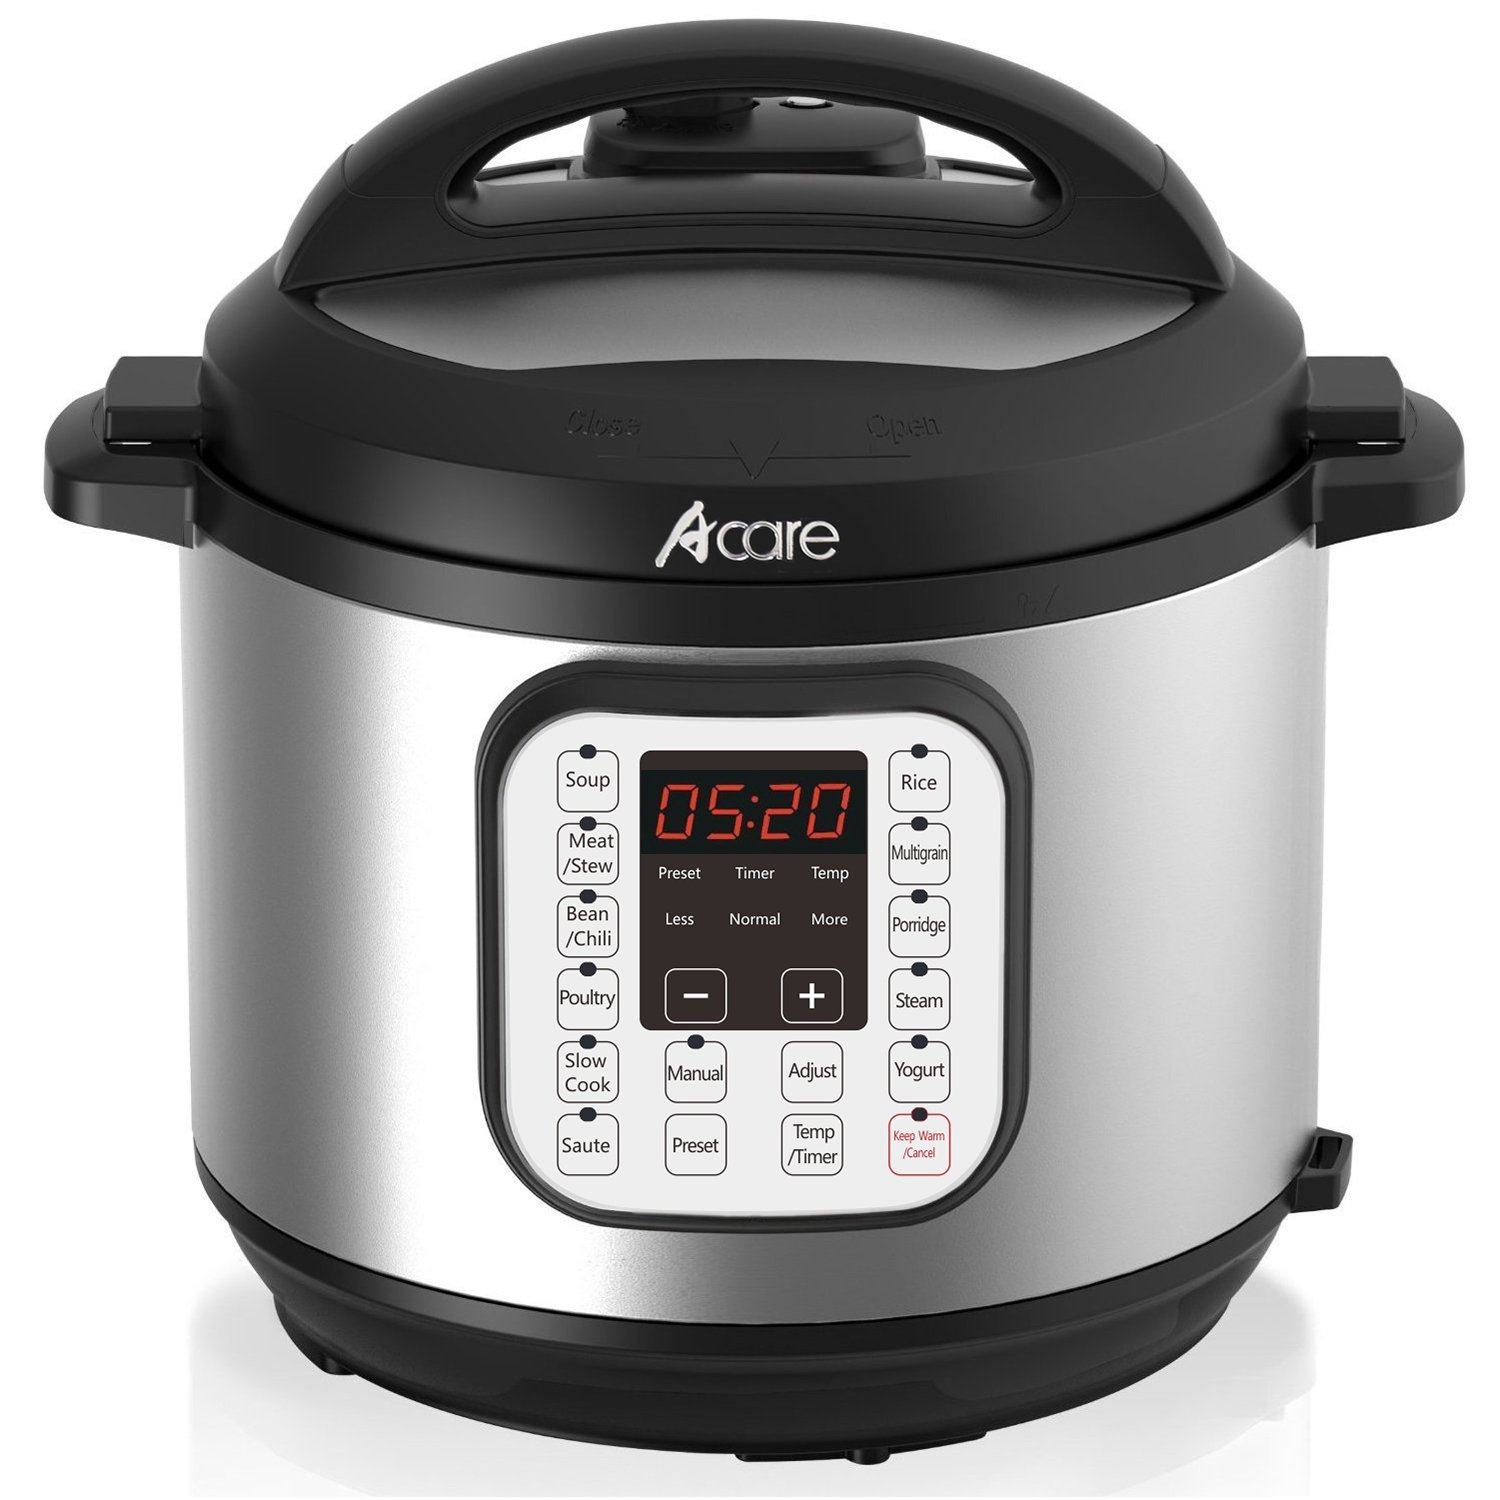 Amazon.com: Electric Pressure Cooker, Acare 6 Qt 7-in-1 Programmable Multi- Cooker, Slow Cooker, Rice Cooker, Steamer, Yogurt Maker and Warming Pot,  1000W, ...